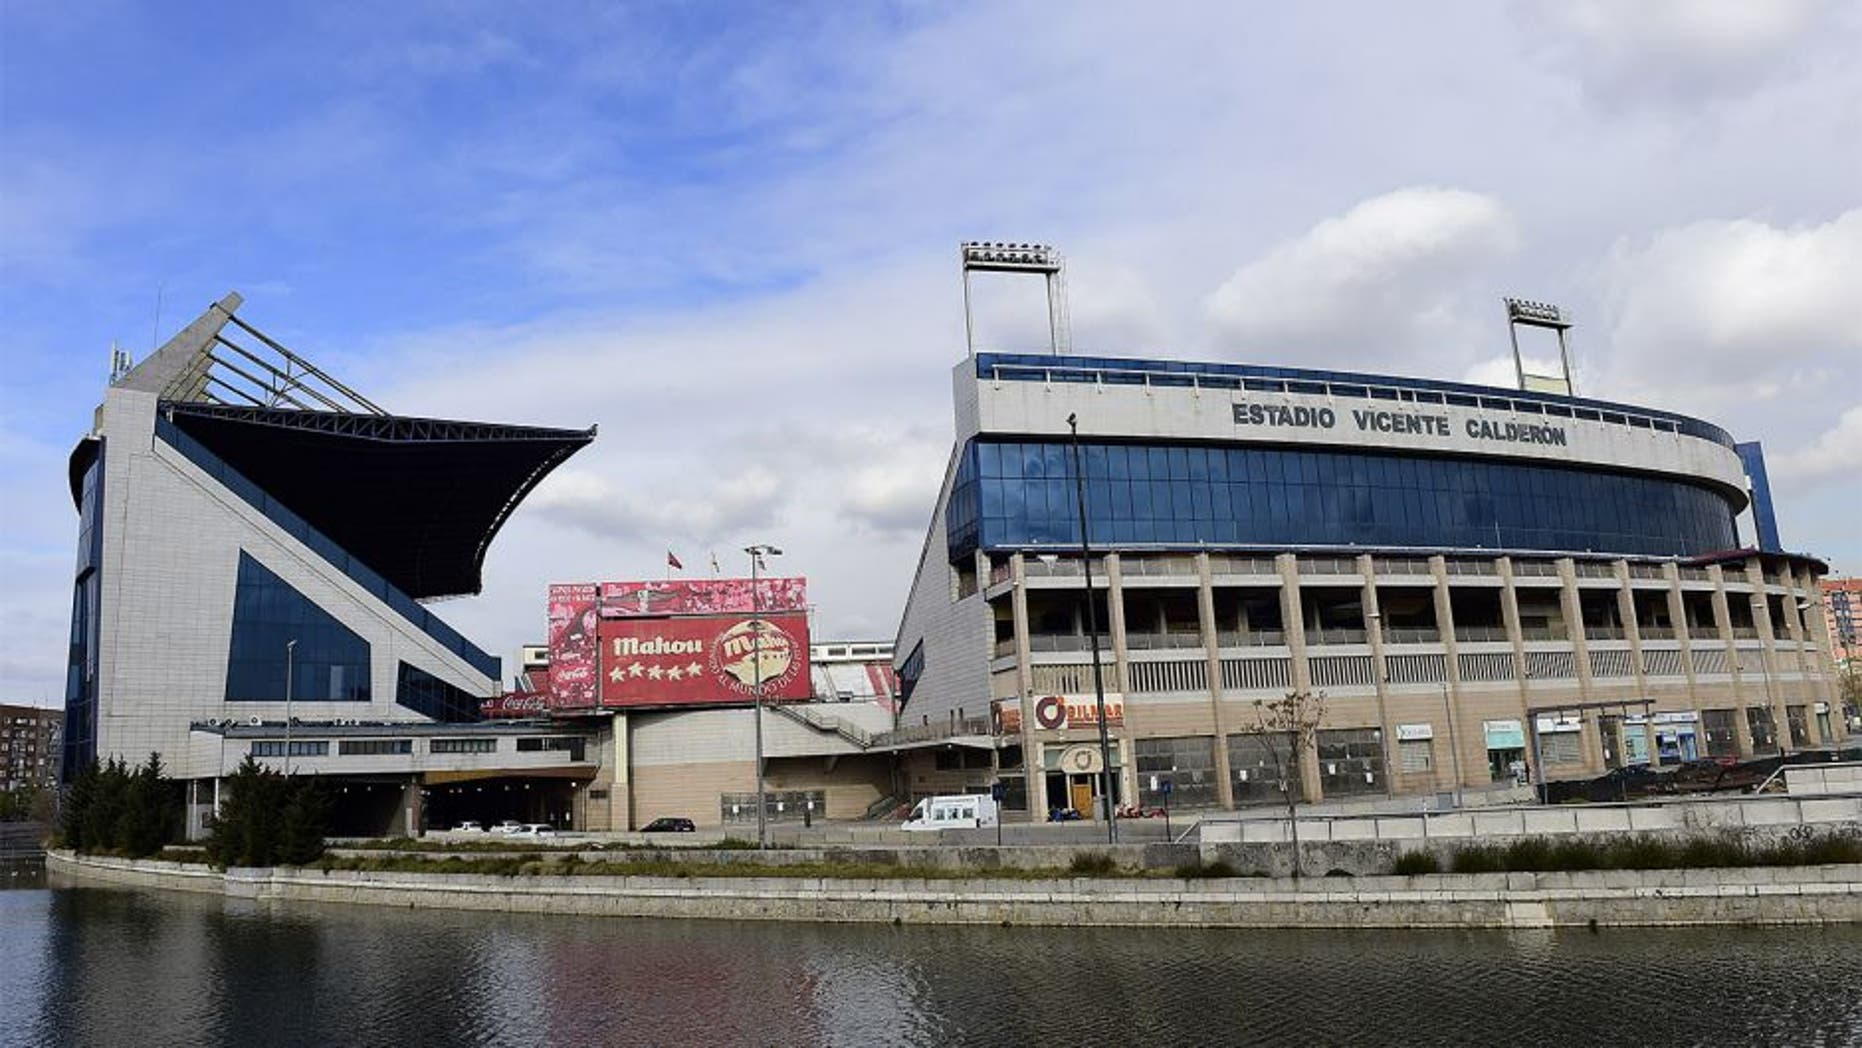 A picture shows a general view of Vicente Calderon stadium on the banks of the Manzanares river, in Madrid on January 20, 2015. Chinese billionaire Wang Jianlin plans to buy a 20-percent stake in Spanish league champions Atletico Madrid, media reported on January 19, 2015. AFP PHOTO/ JAVIER SORIANO (Photo credit should read JAVIER SORIANO/AFP/Getty Images)